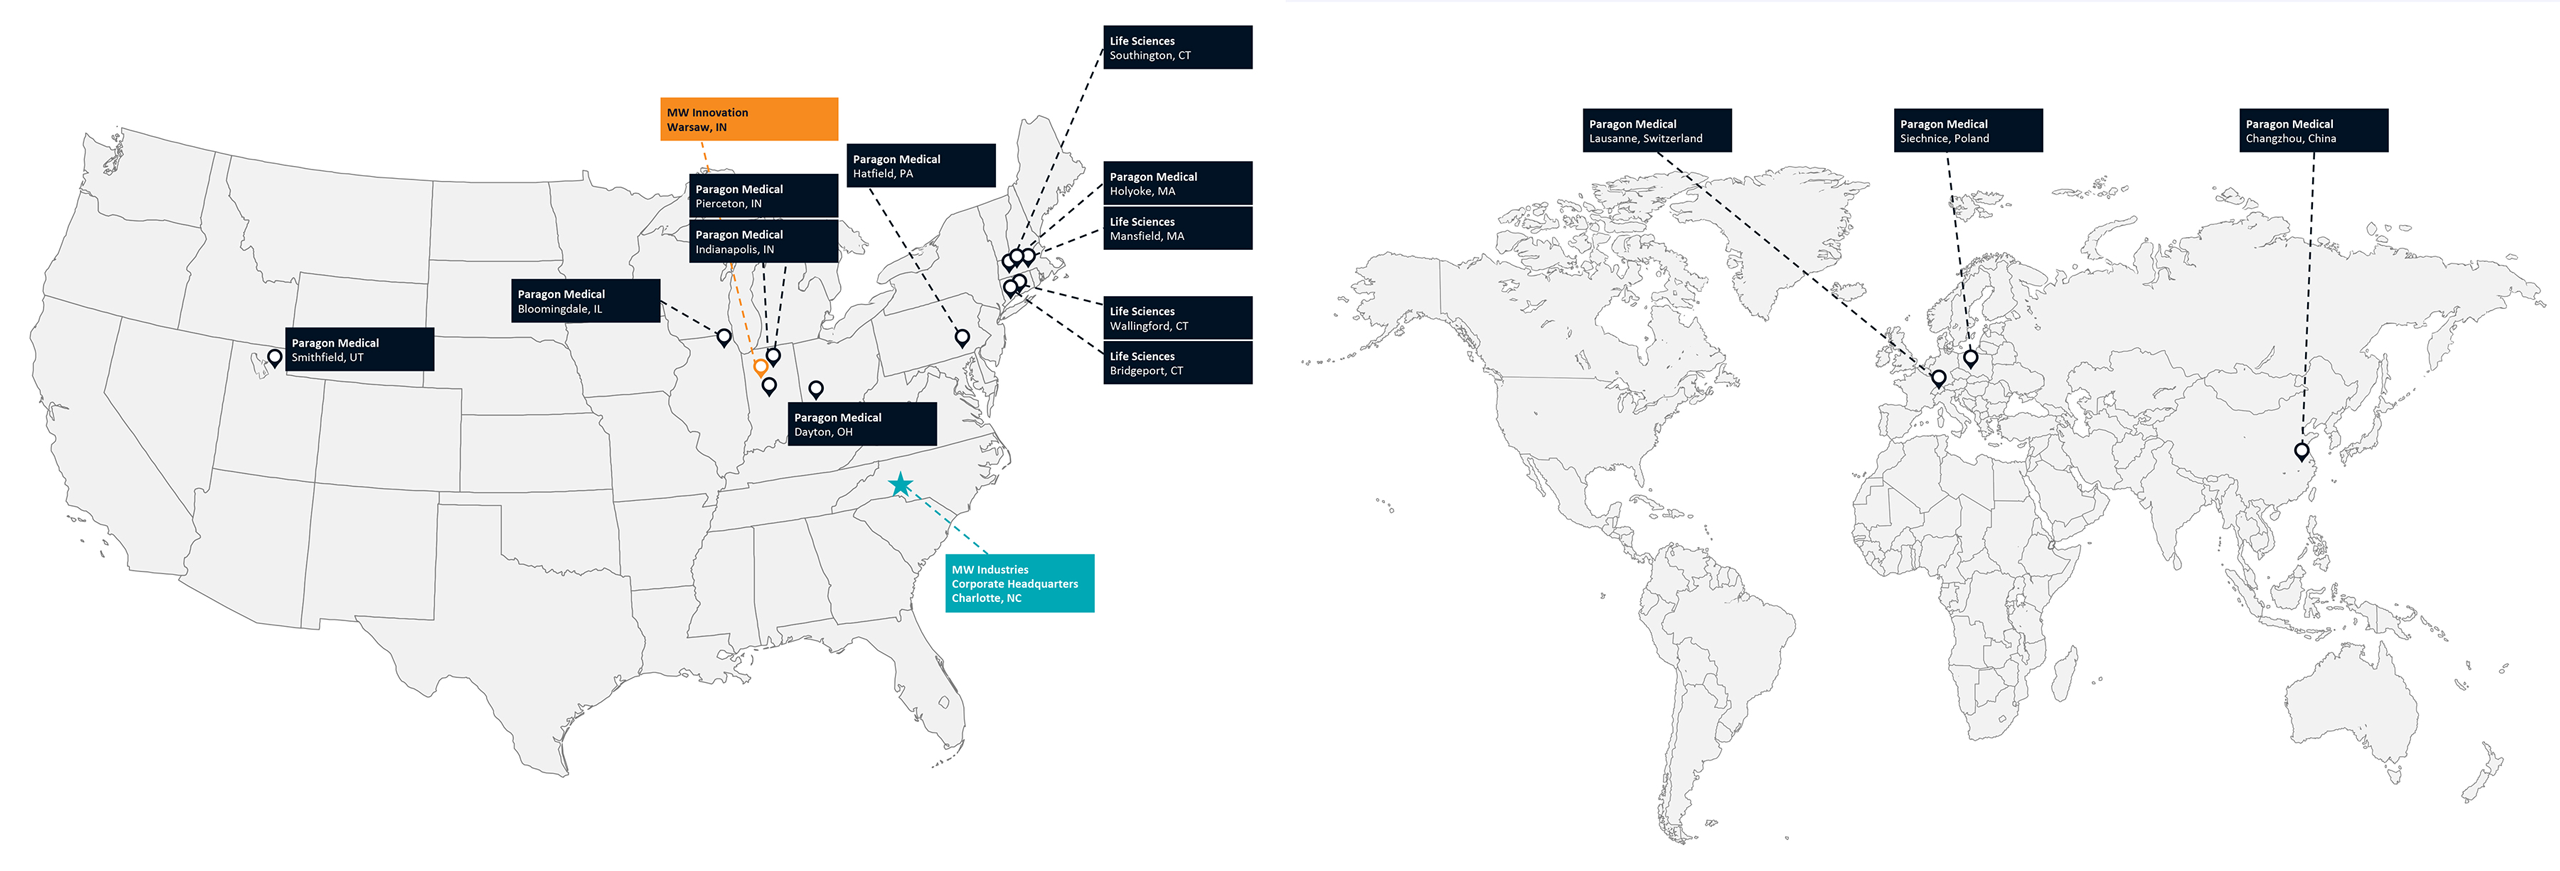 MW Life Sciences - Worldwide Manufacturing Locations